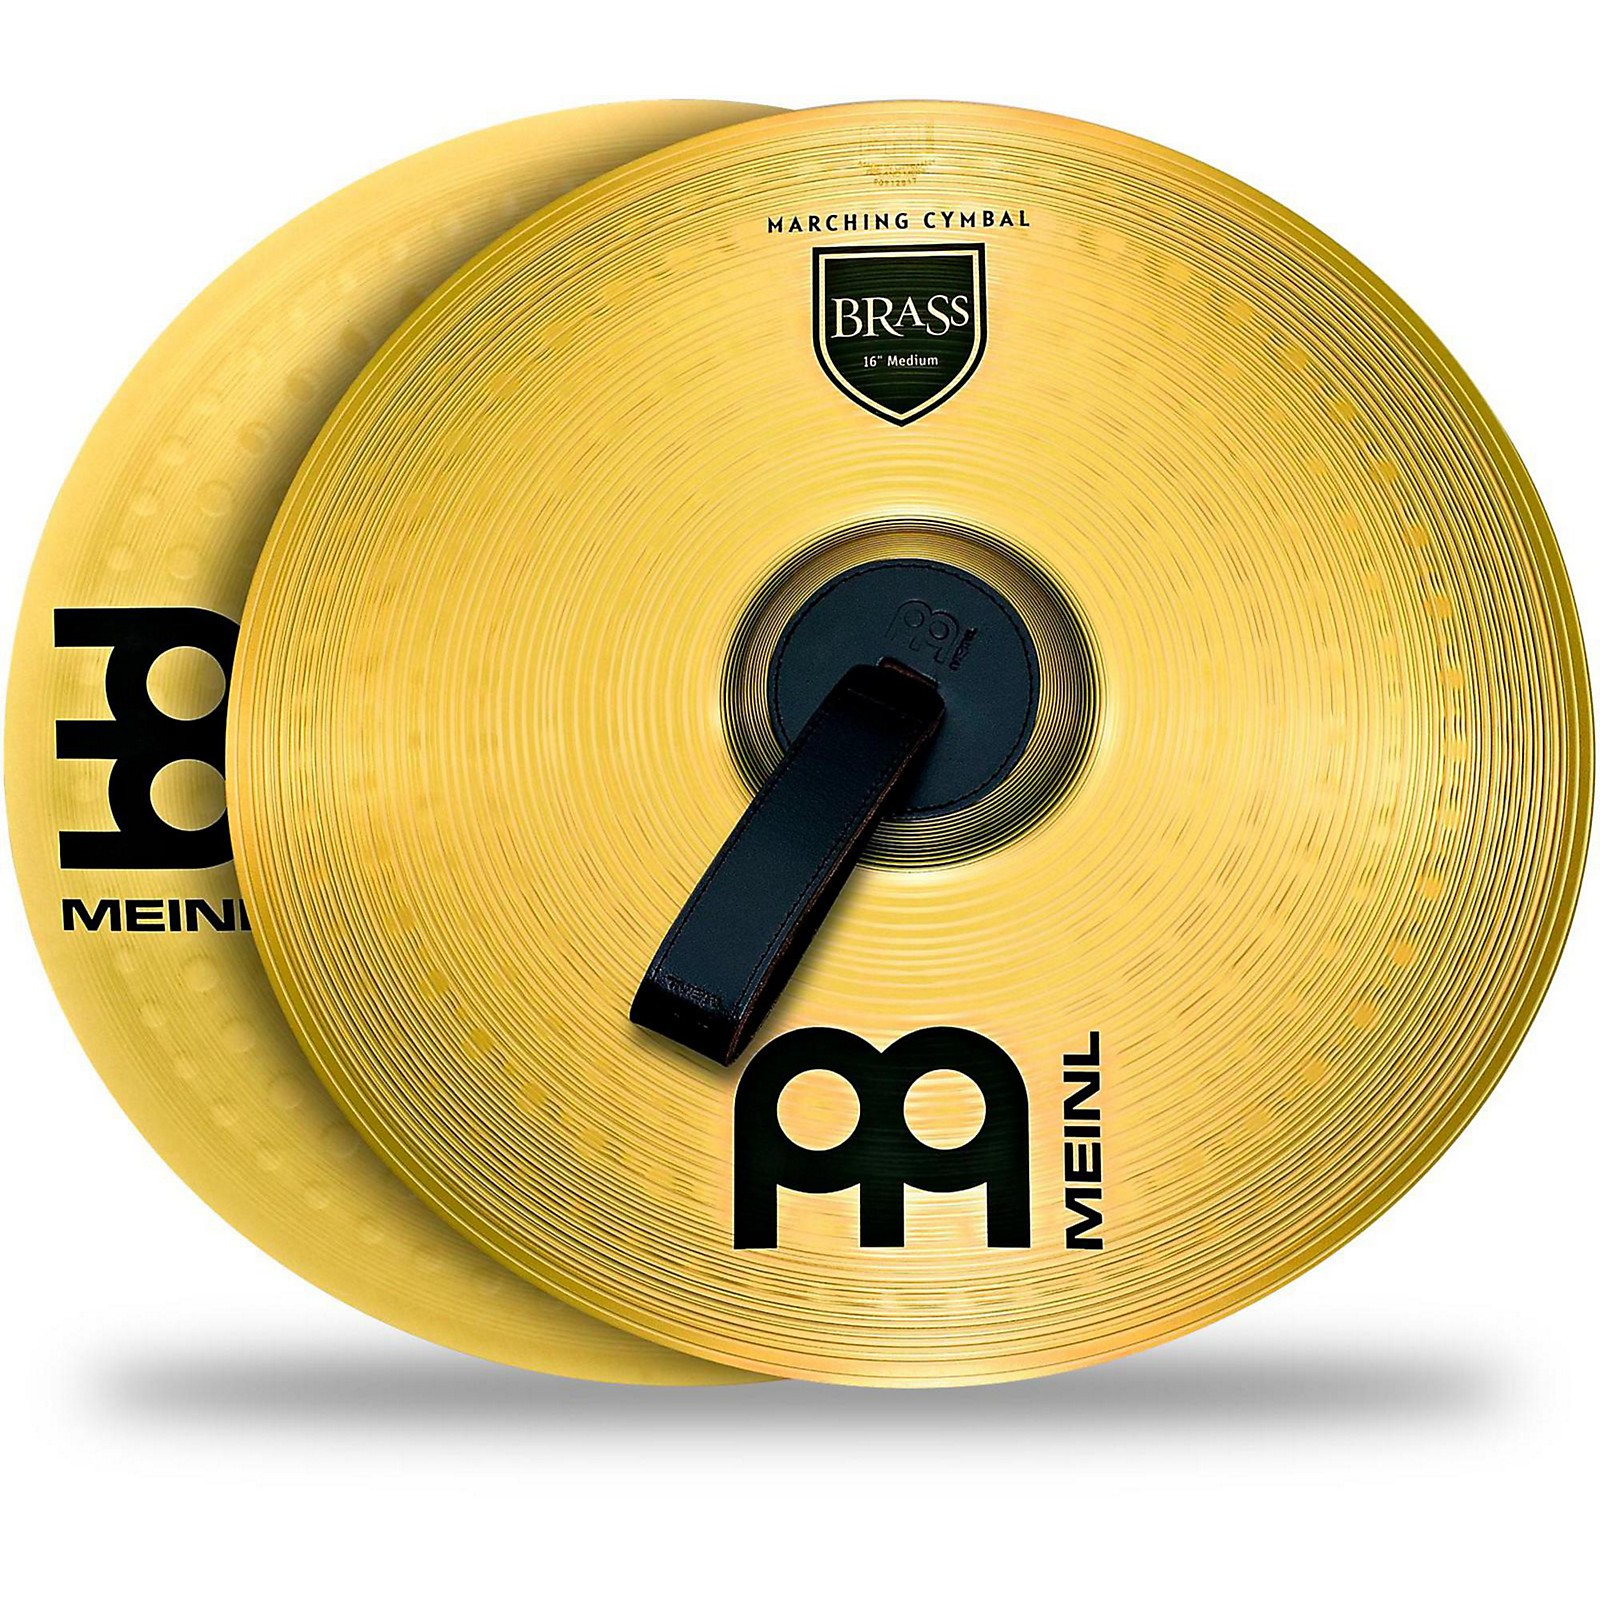 Meinl Brass Marching Cymbal Pair